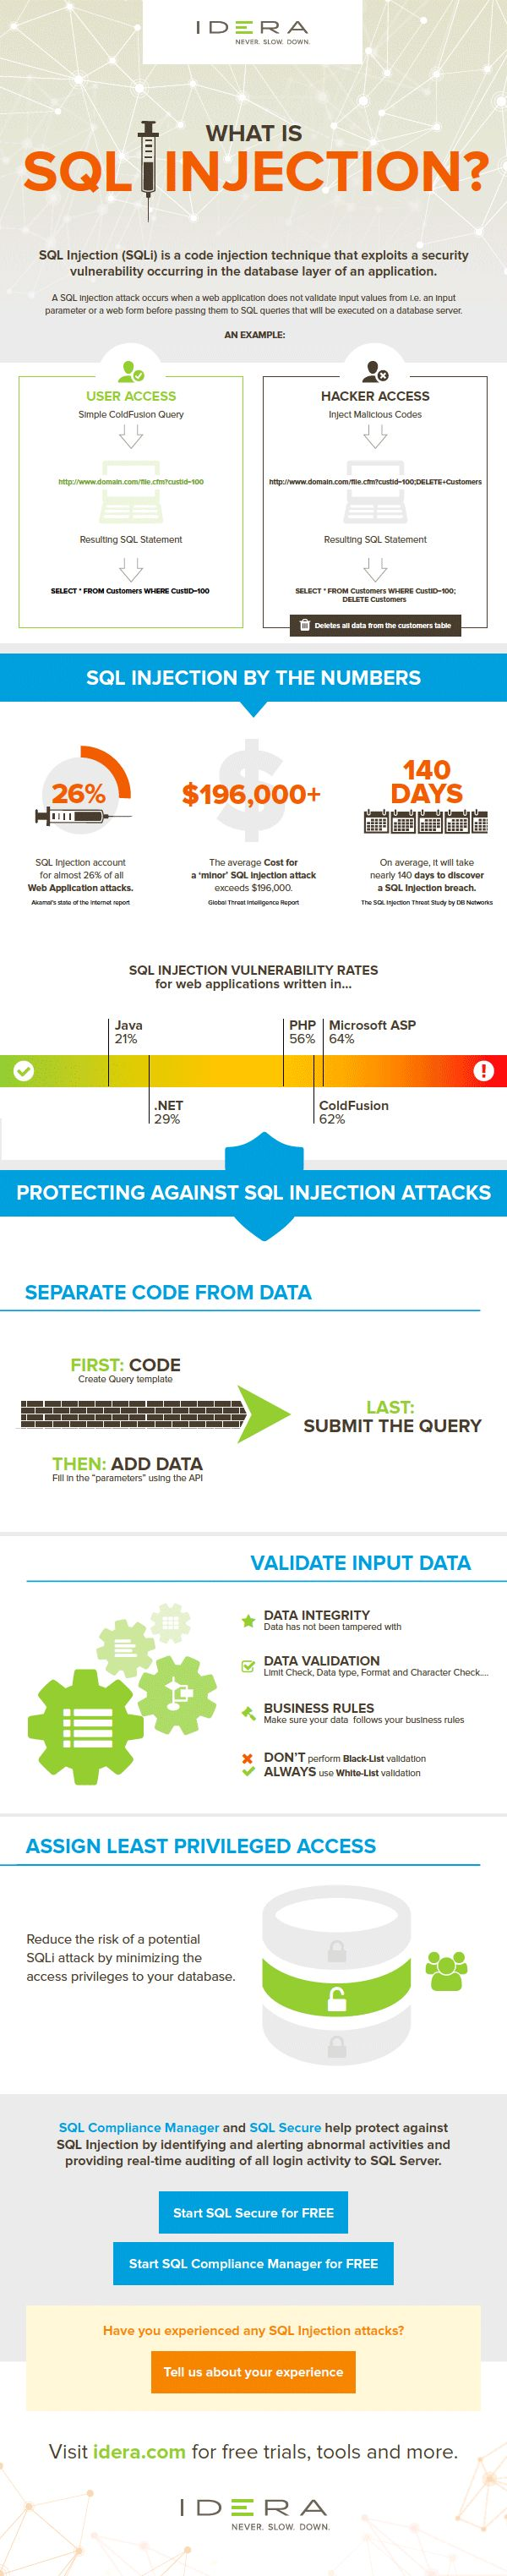 What is SQL Injection | IDERA